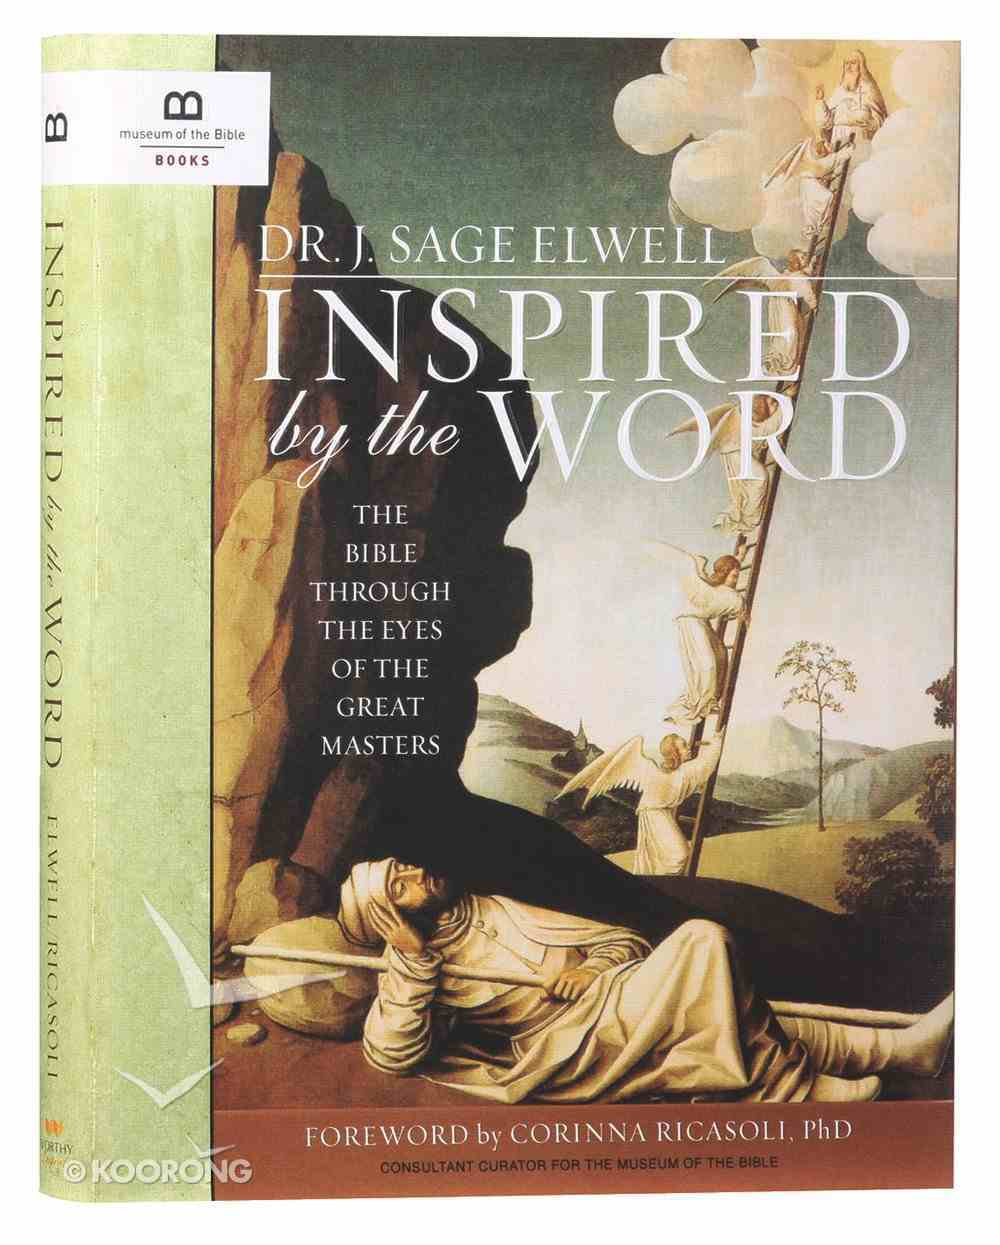 Inspired By the Word: The Bible Through the Eyes of the Great Masters Hardback